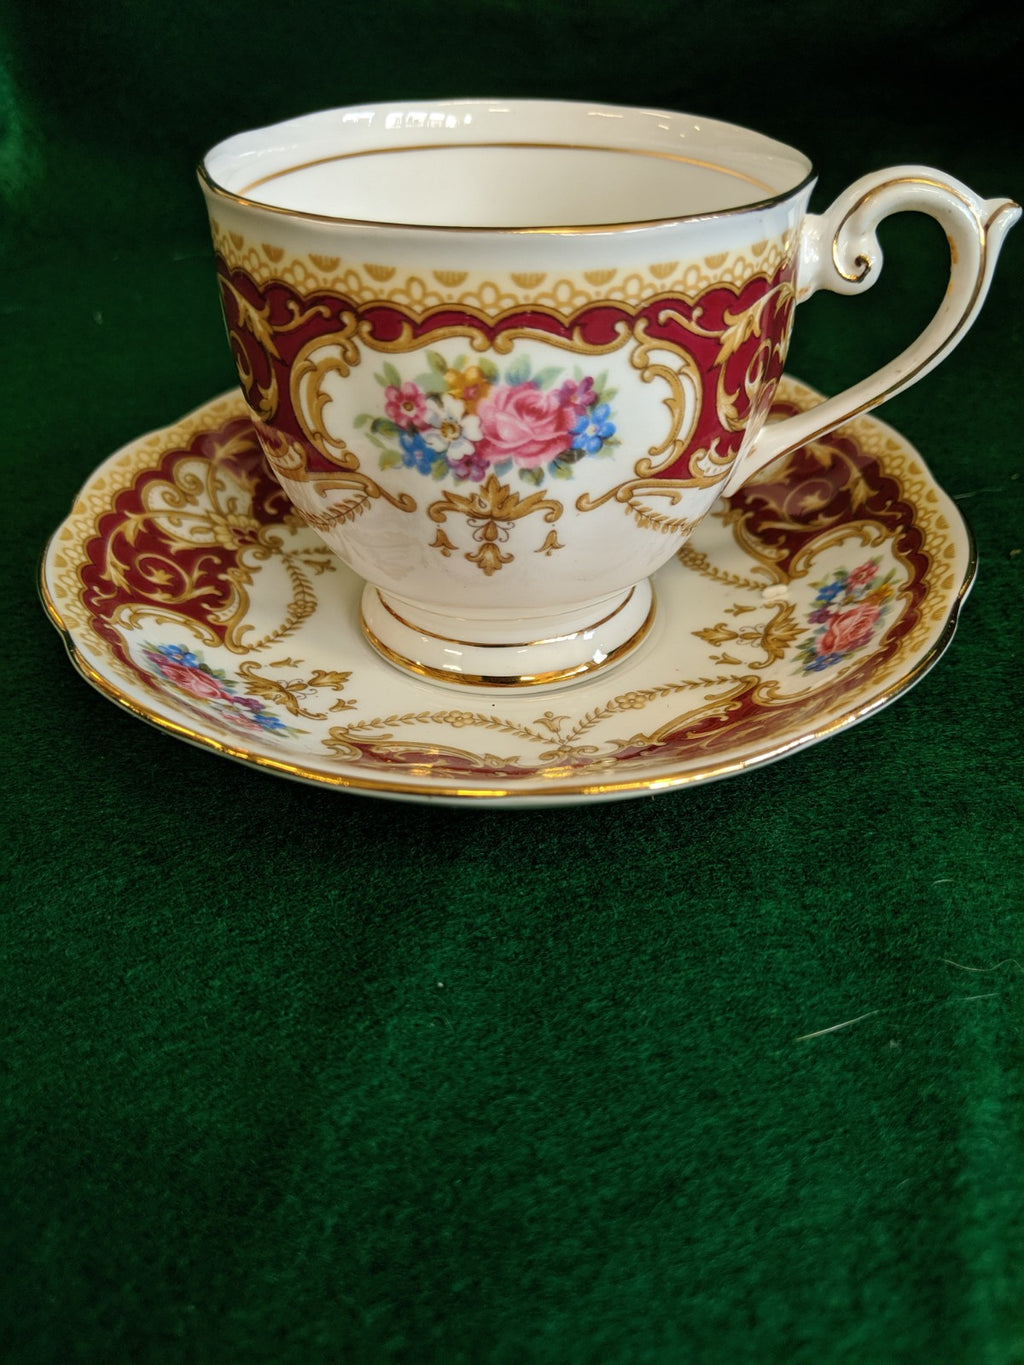 Vintage Queen Anne Regency tea cup and saucer